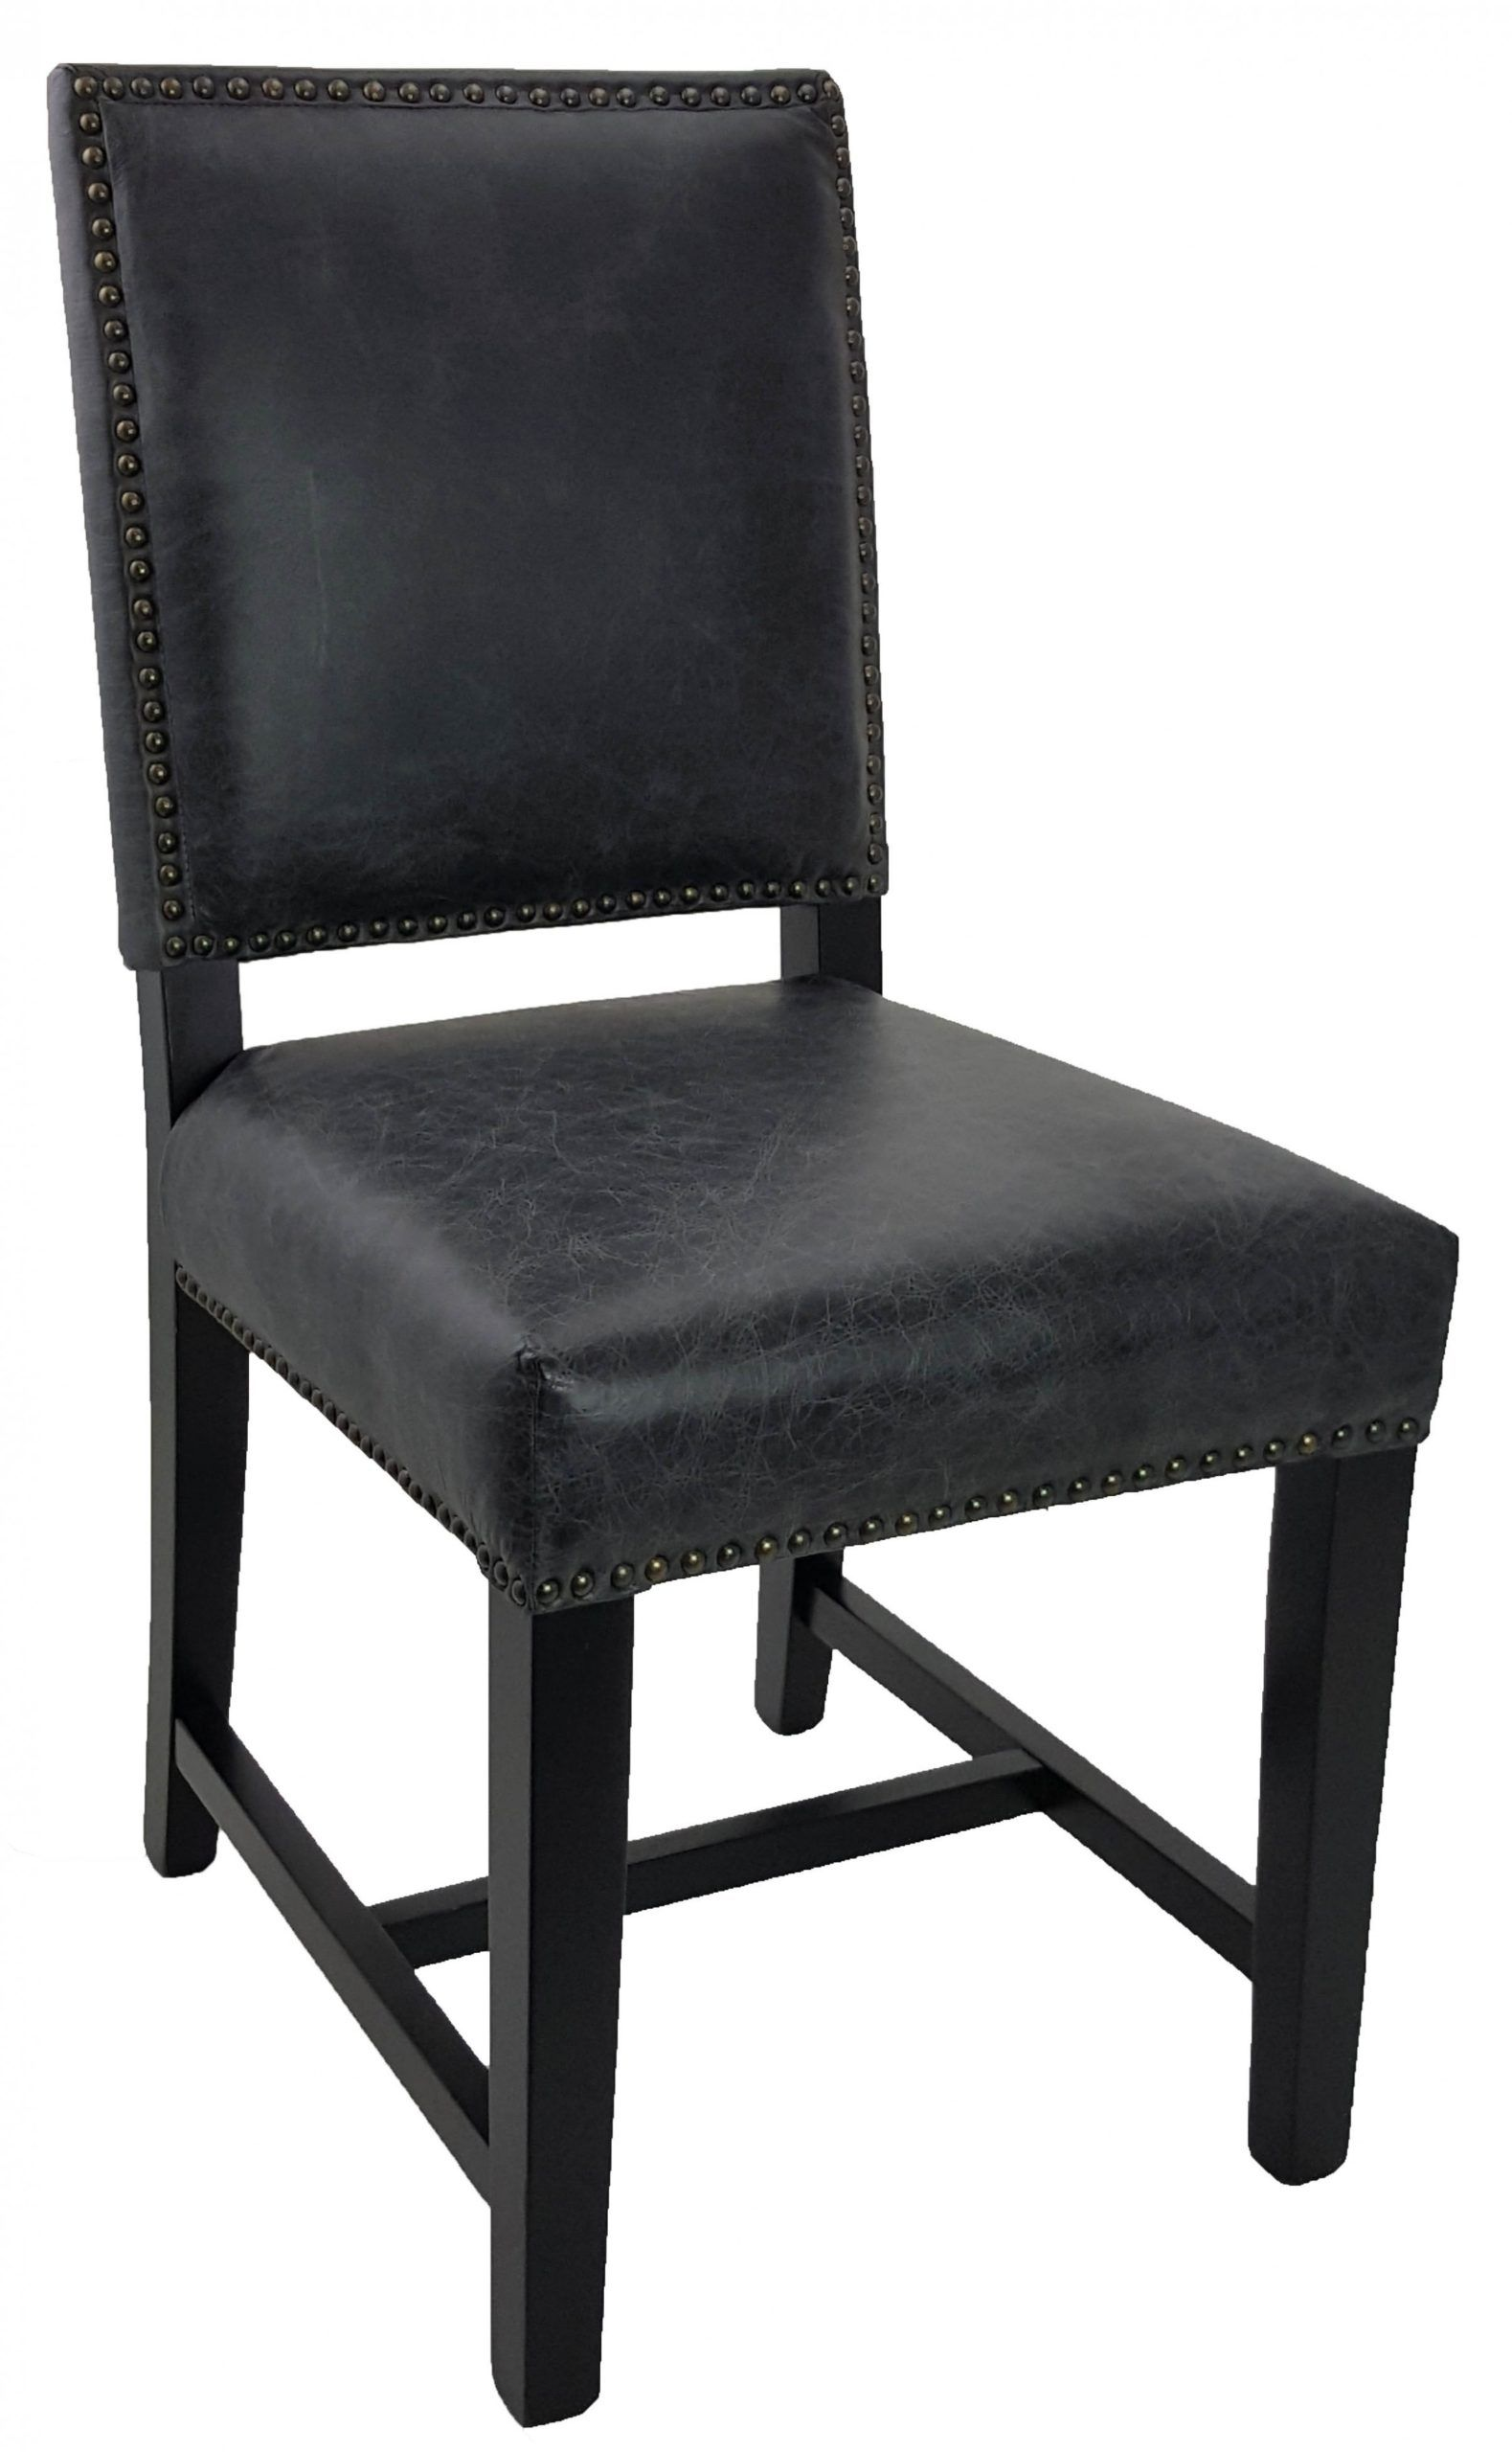 Black Leather Kitchen Chairs Leather Kitchen Chairs Dining Chairs Black Leather Dining Chairs